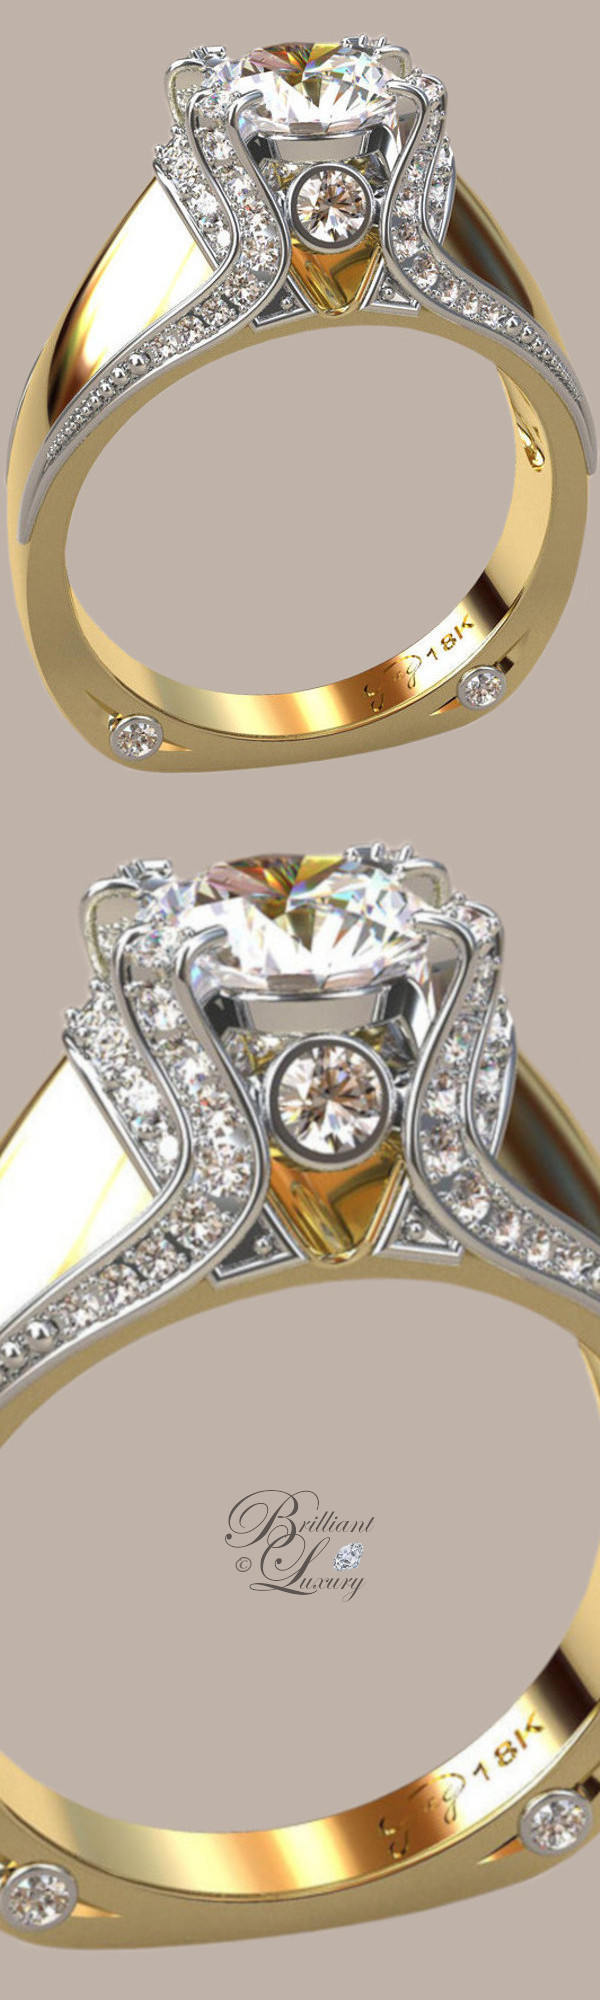 Greg Neeley Italian Top Ladies Diamond 18k Ring